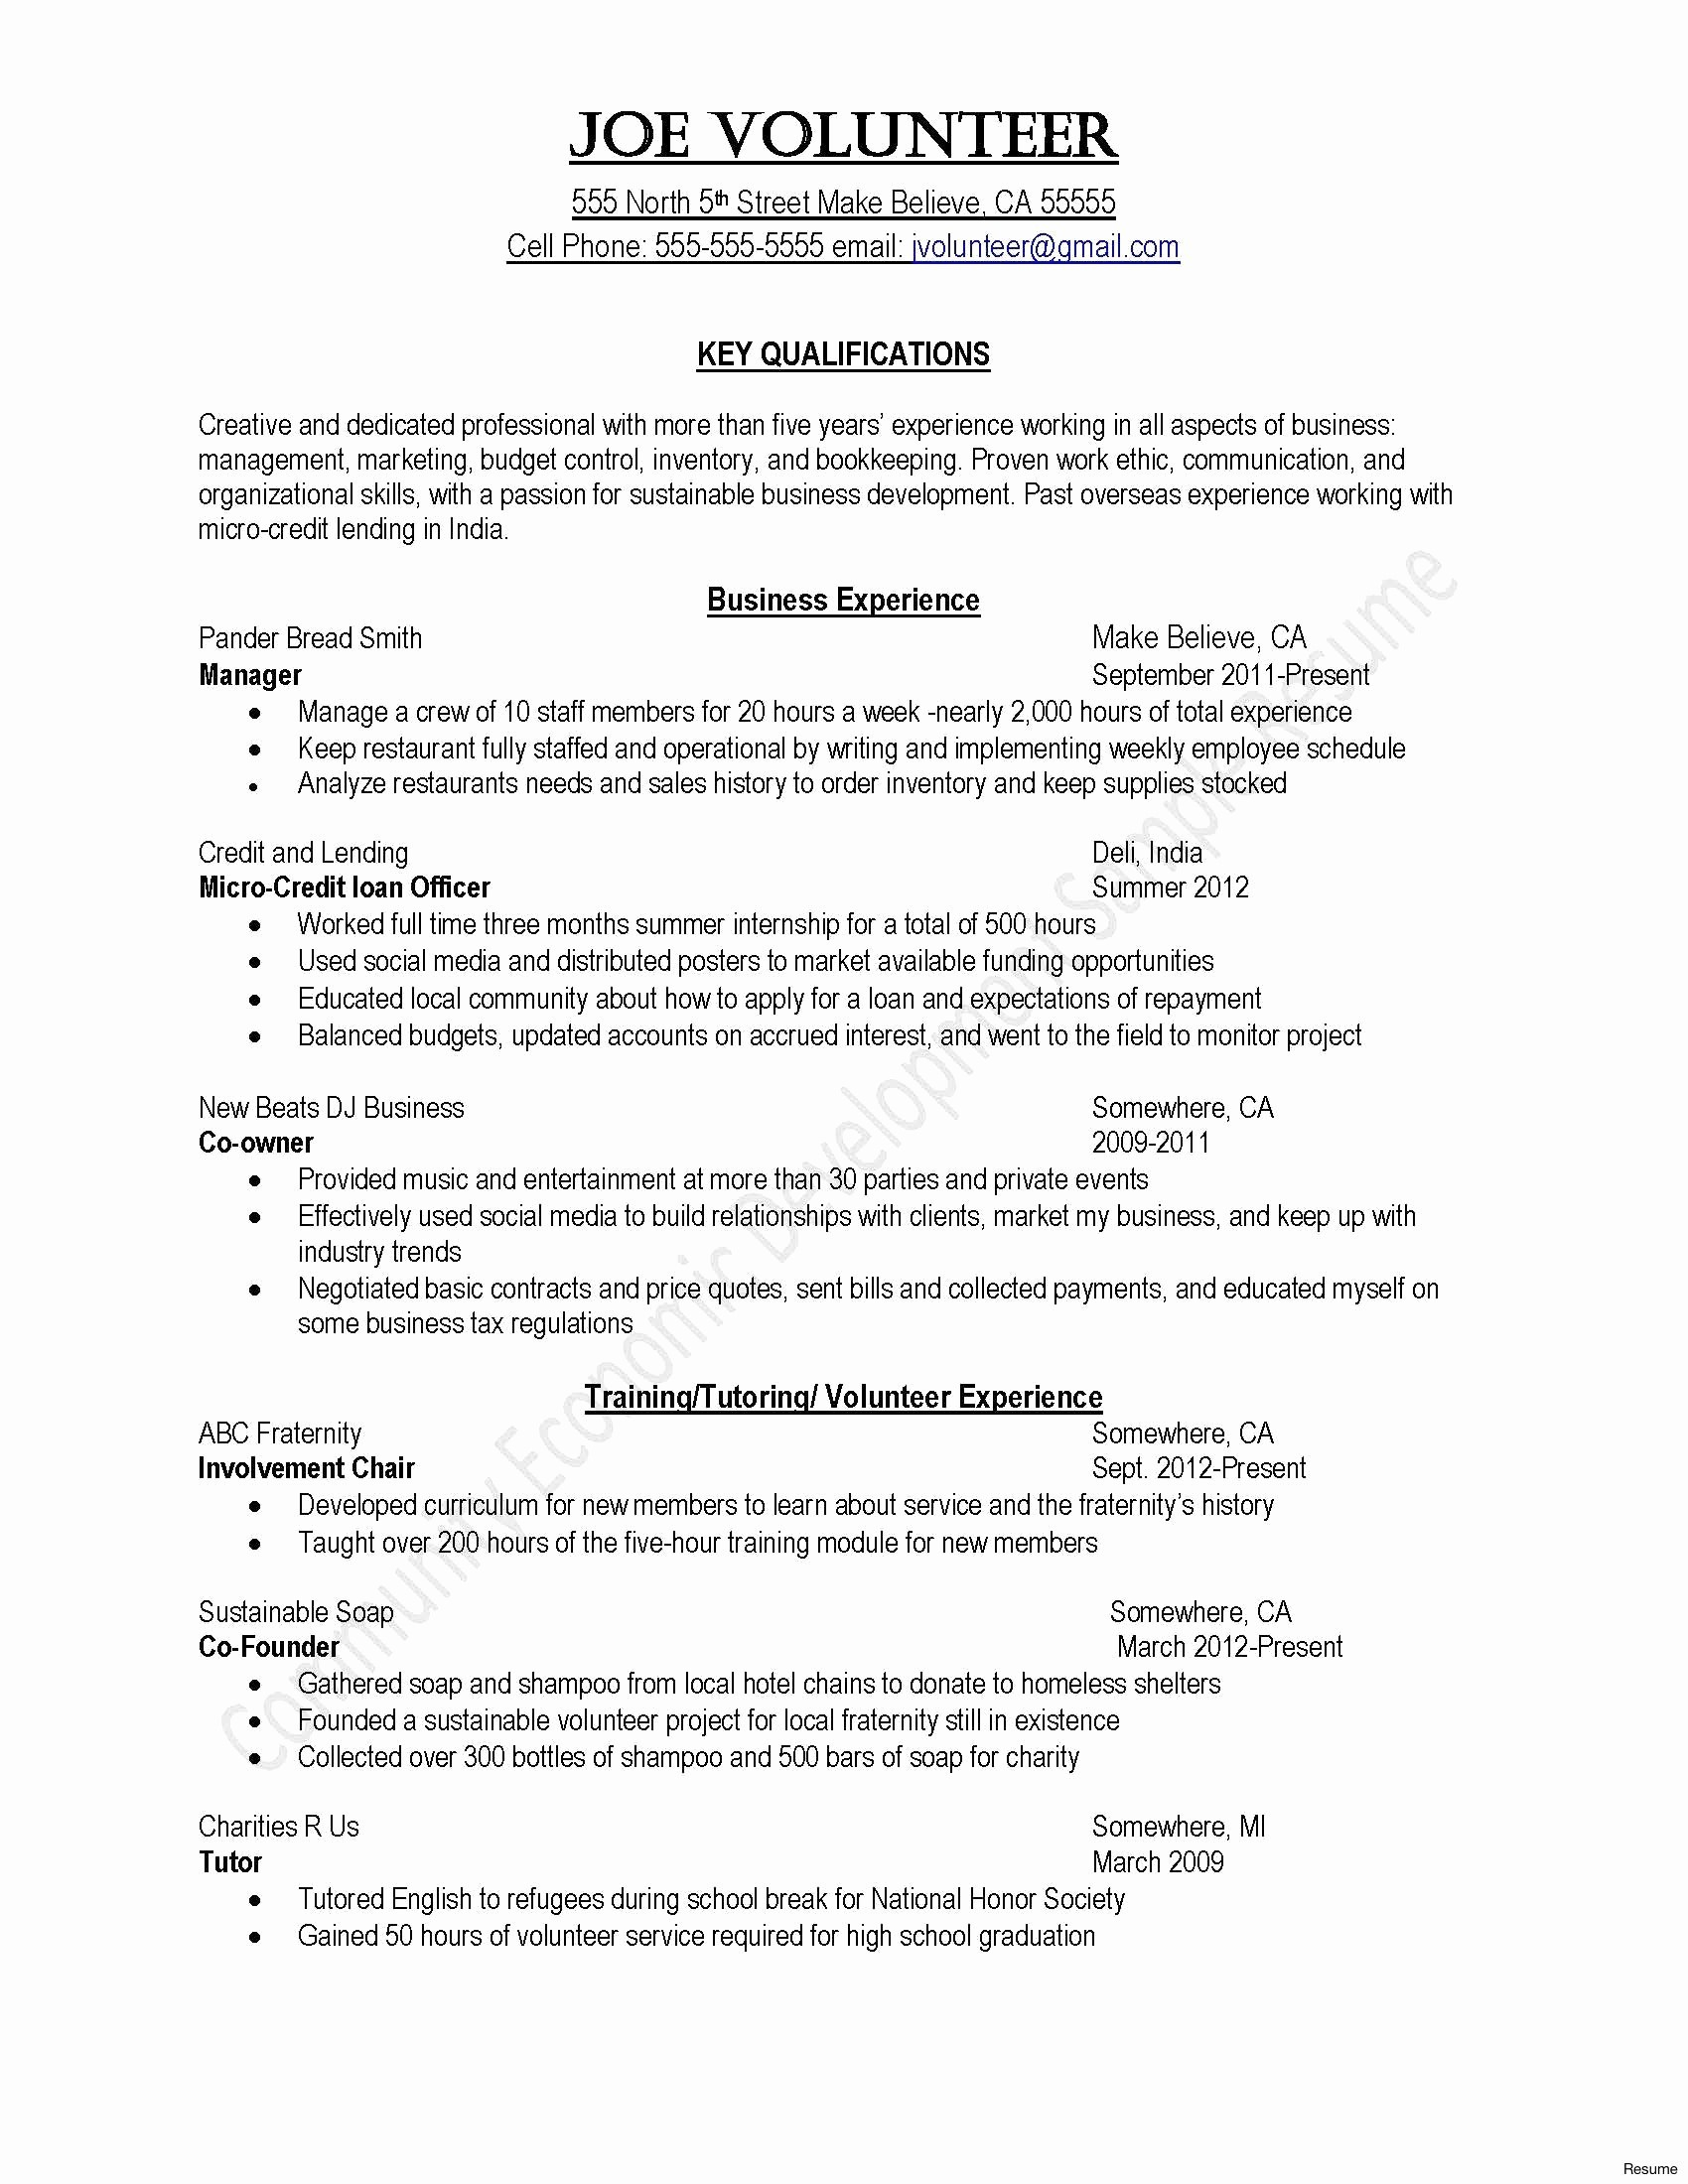 Cover Letter Template Australia - Good Way to Start A Cover Letter